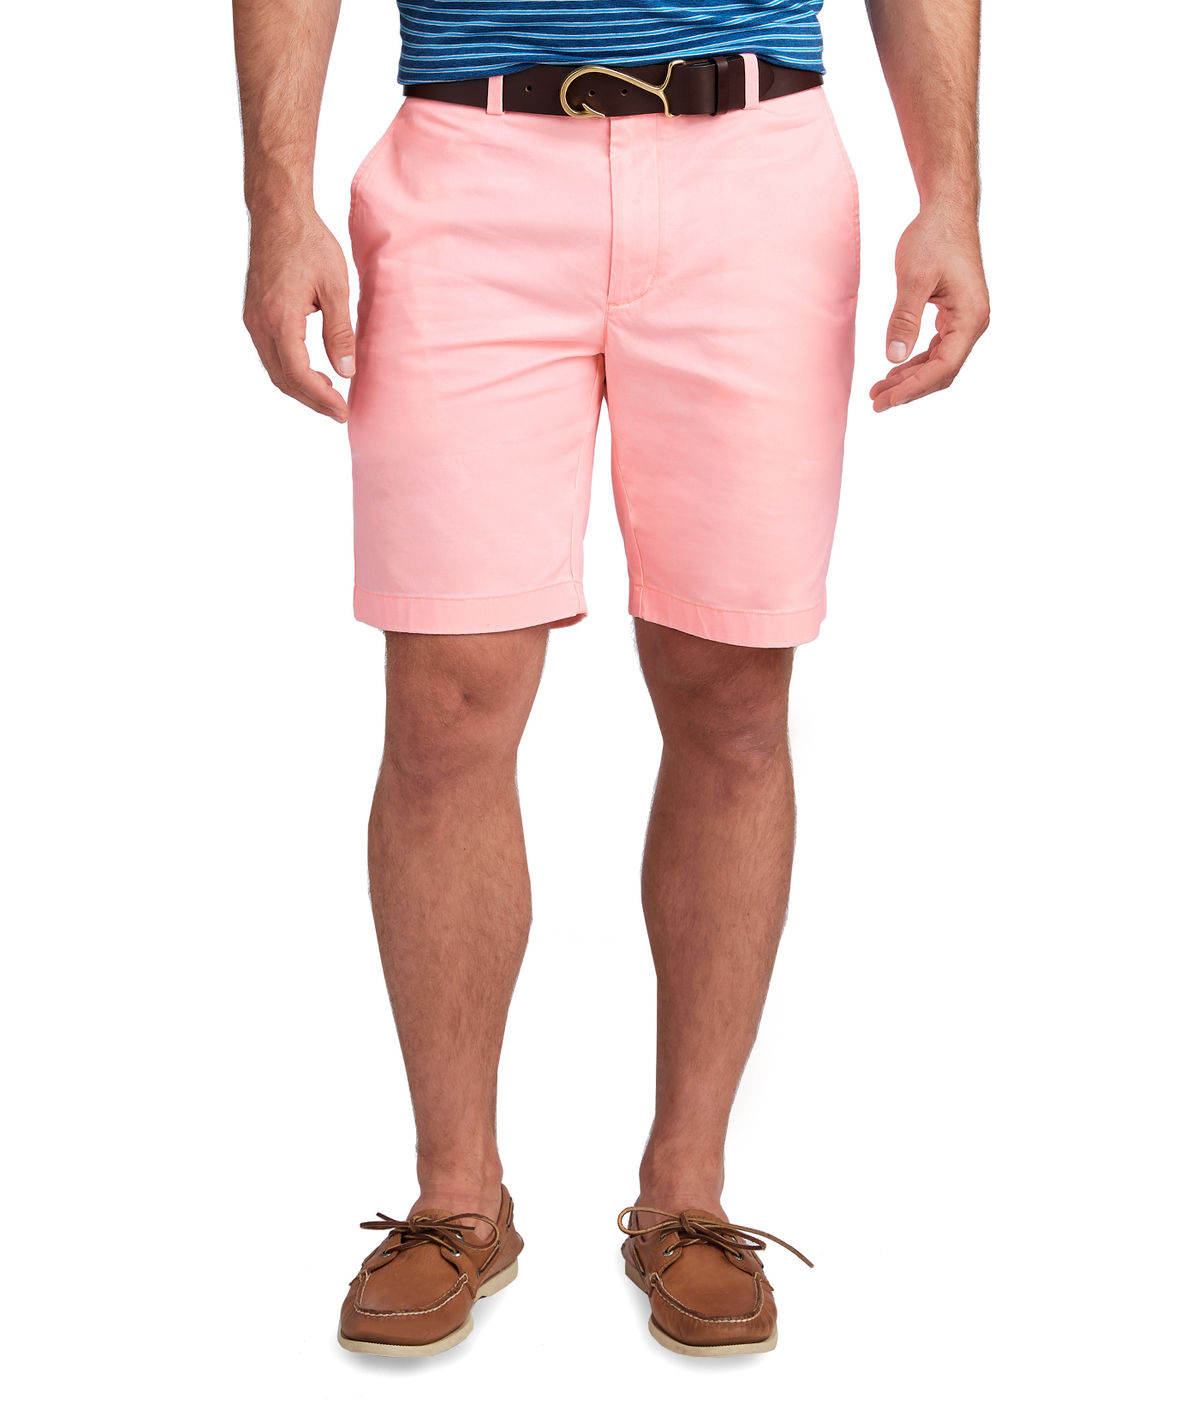 Solid Pastel Shorts